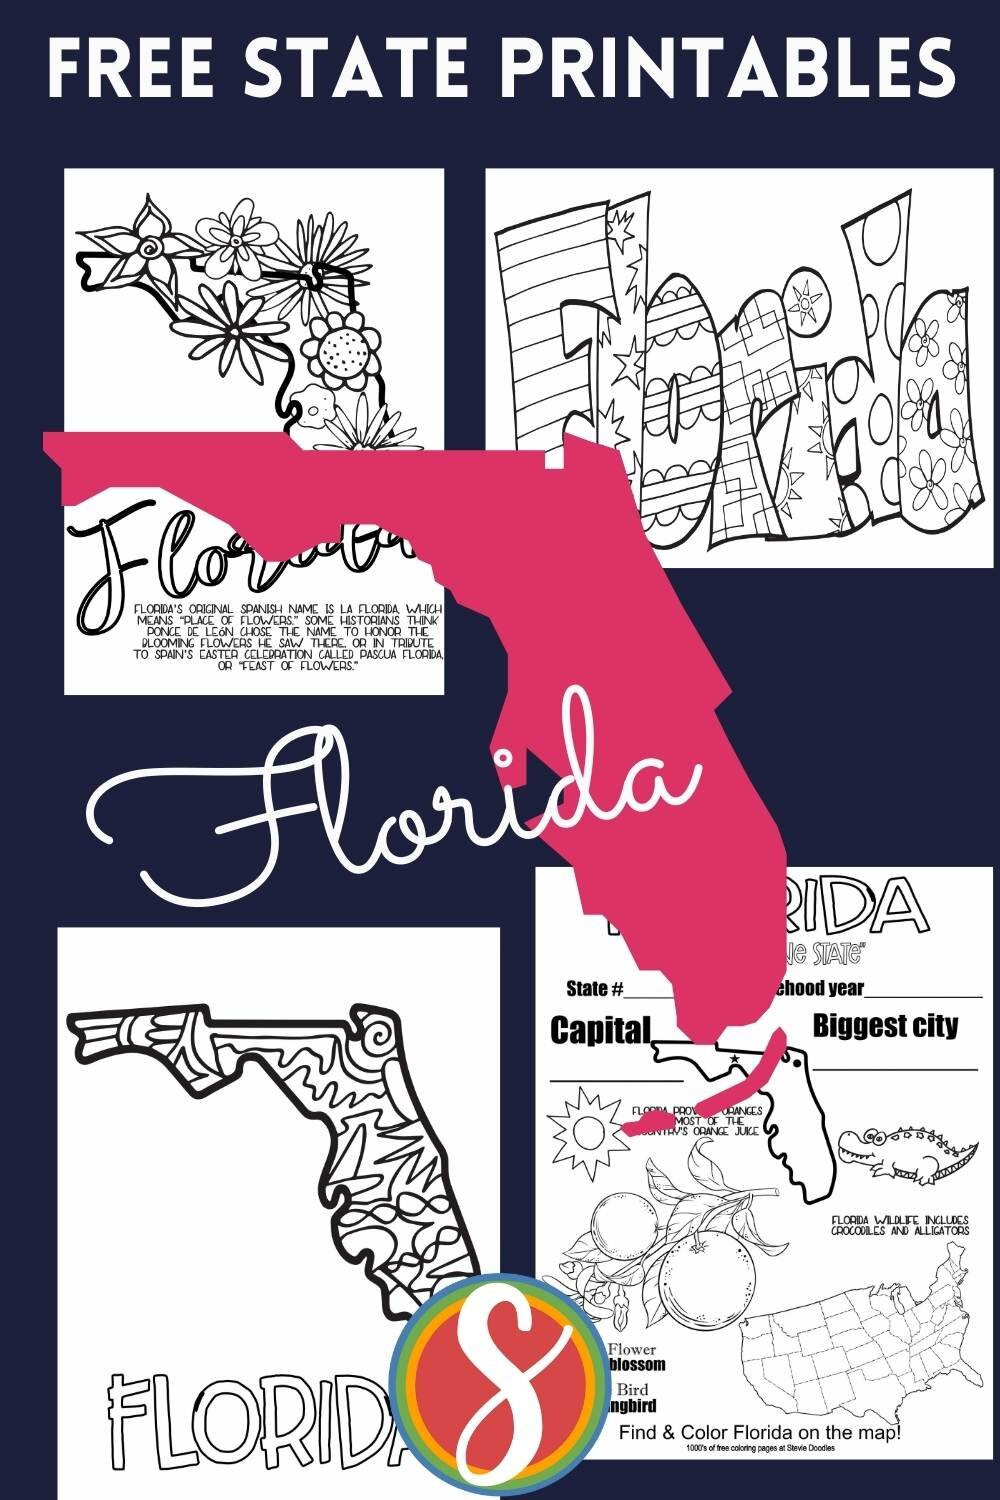 Free! US STATES free printable coloring sheets from Stevie Doodles - these activity pages were made especially for all of you who need some fun coloring pages with the state of the United States